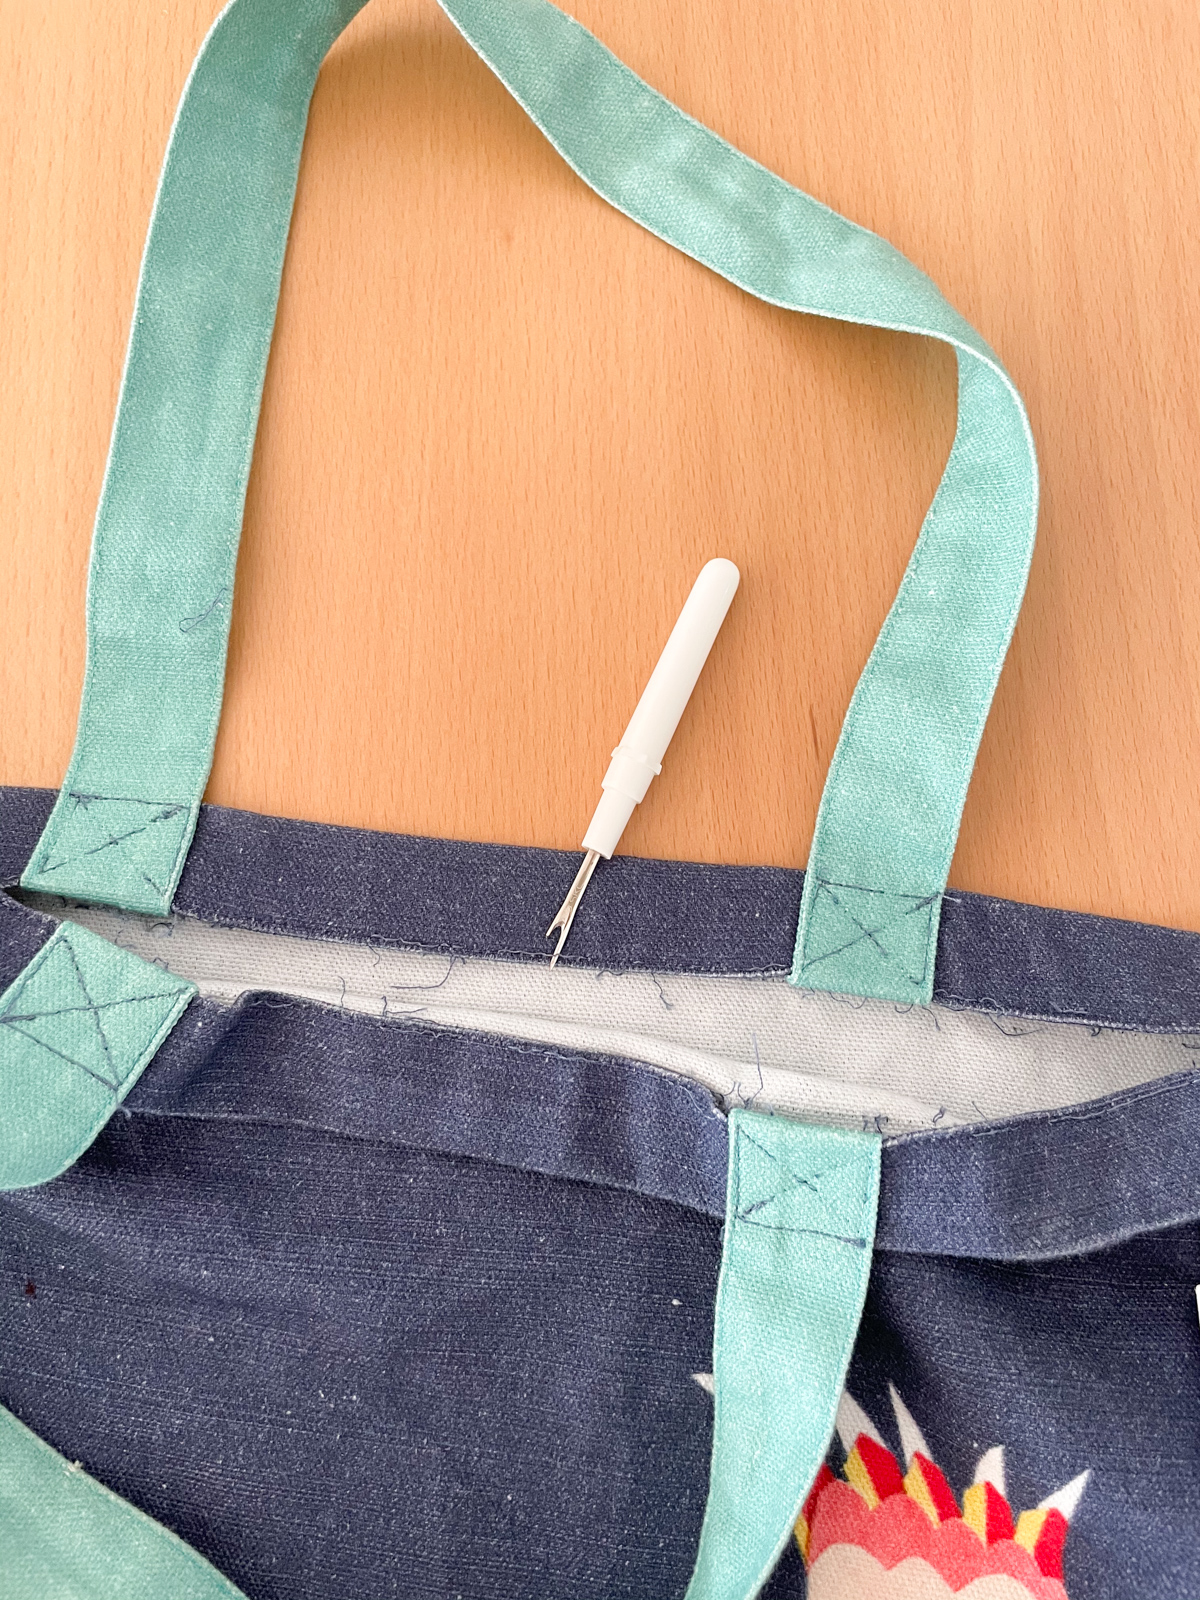 How to Add a Zip to a Tote Bag | Step 1, unpick. Megan Nielsen Patterns Blog